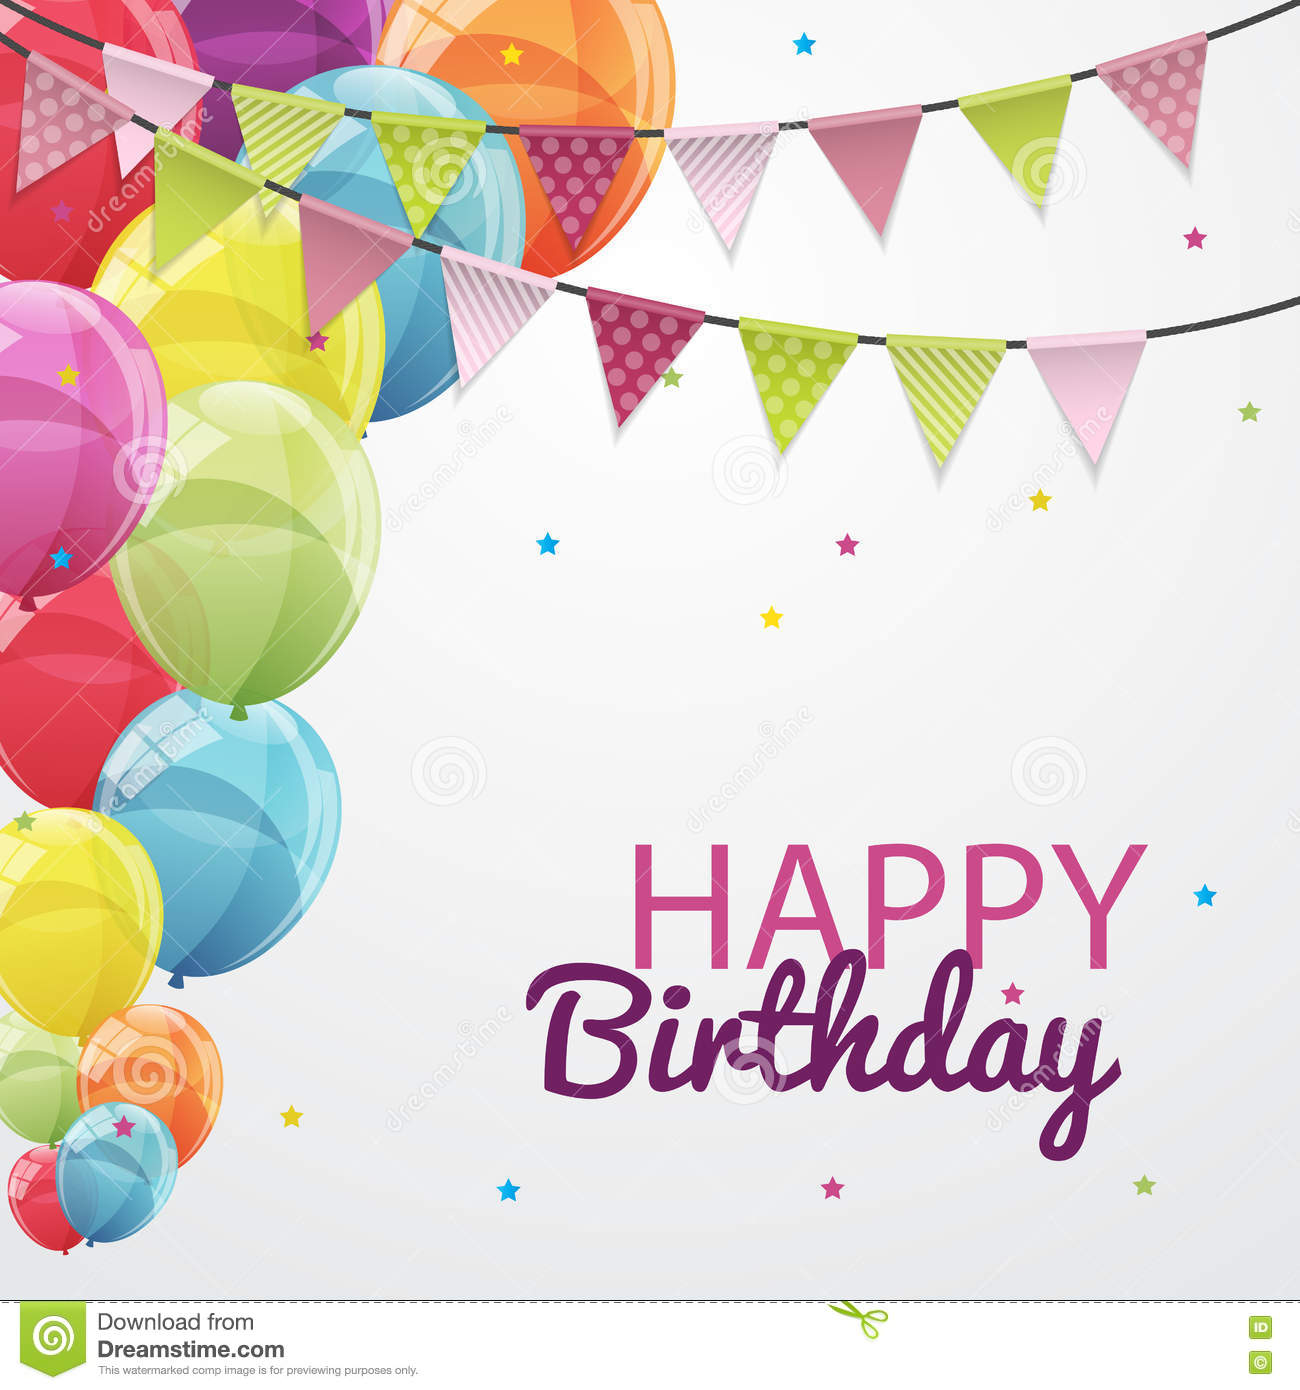 Happy Birthday Card Template With Balloons And Flags